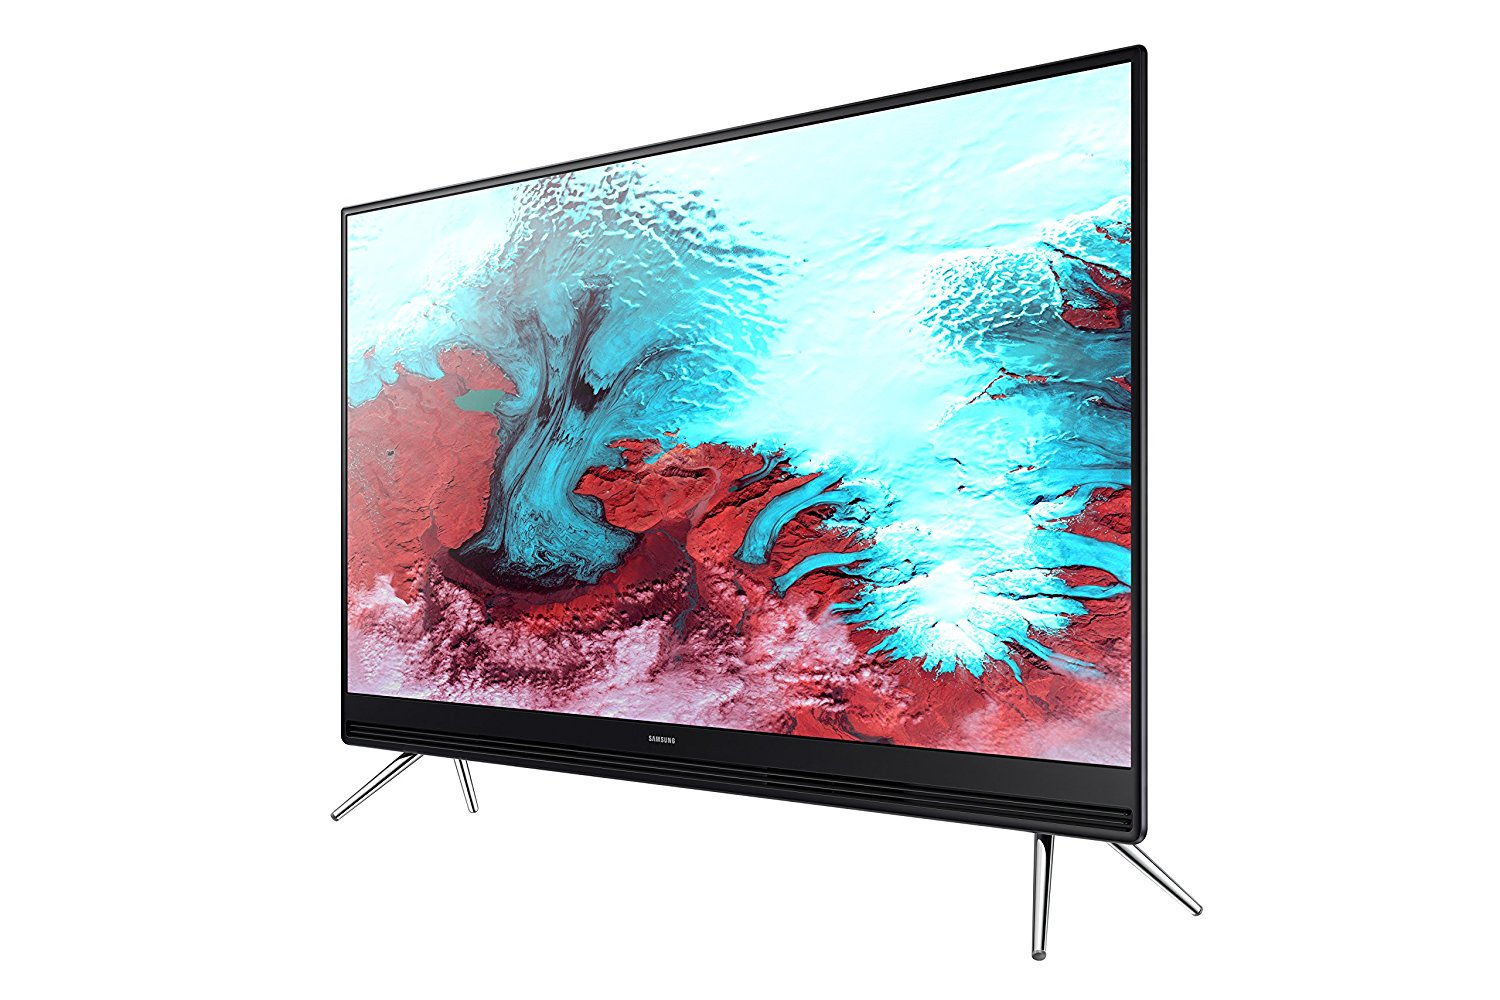 SmartTV Samsung 49 Full HD en Amazon - diosa mexico